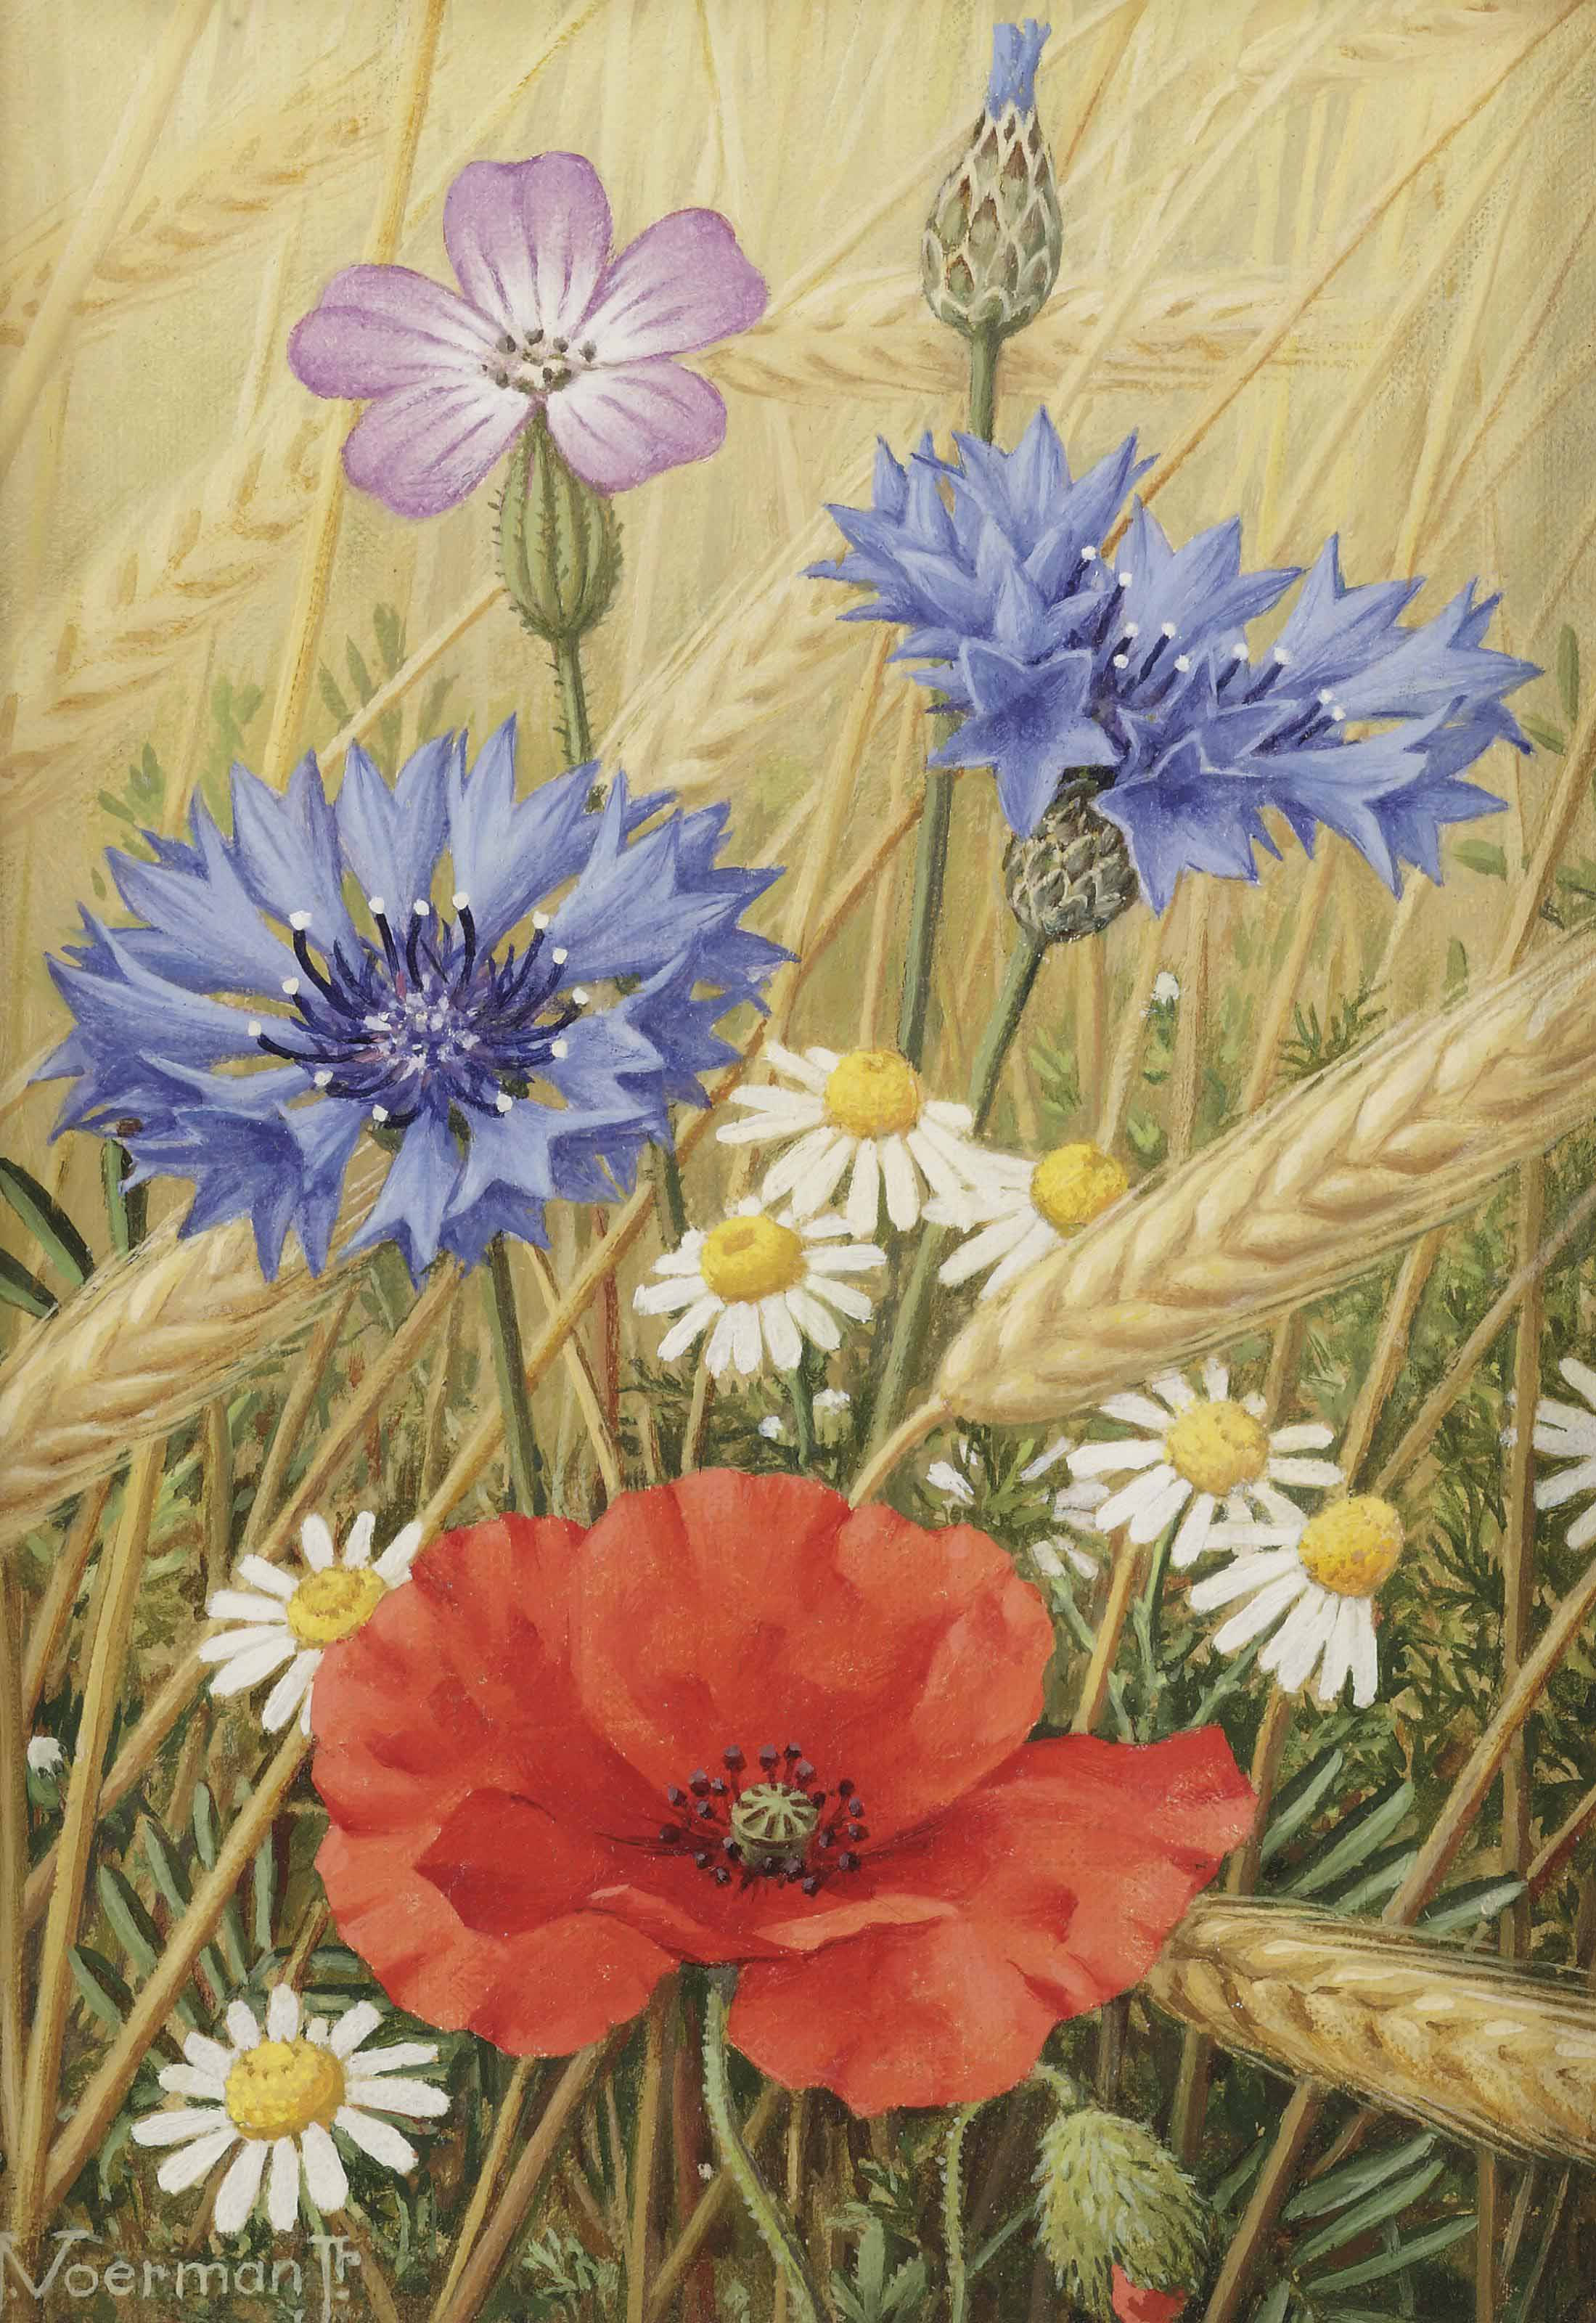 Cornflowers and poppies in a field